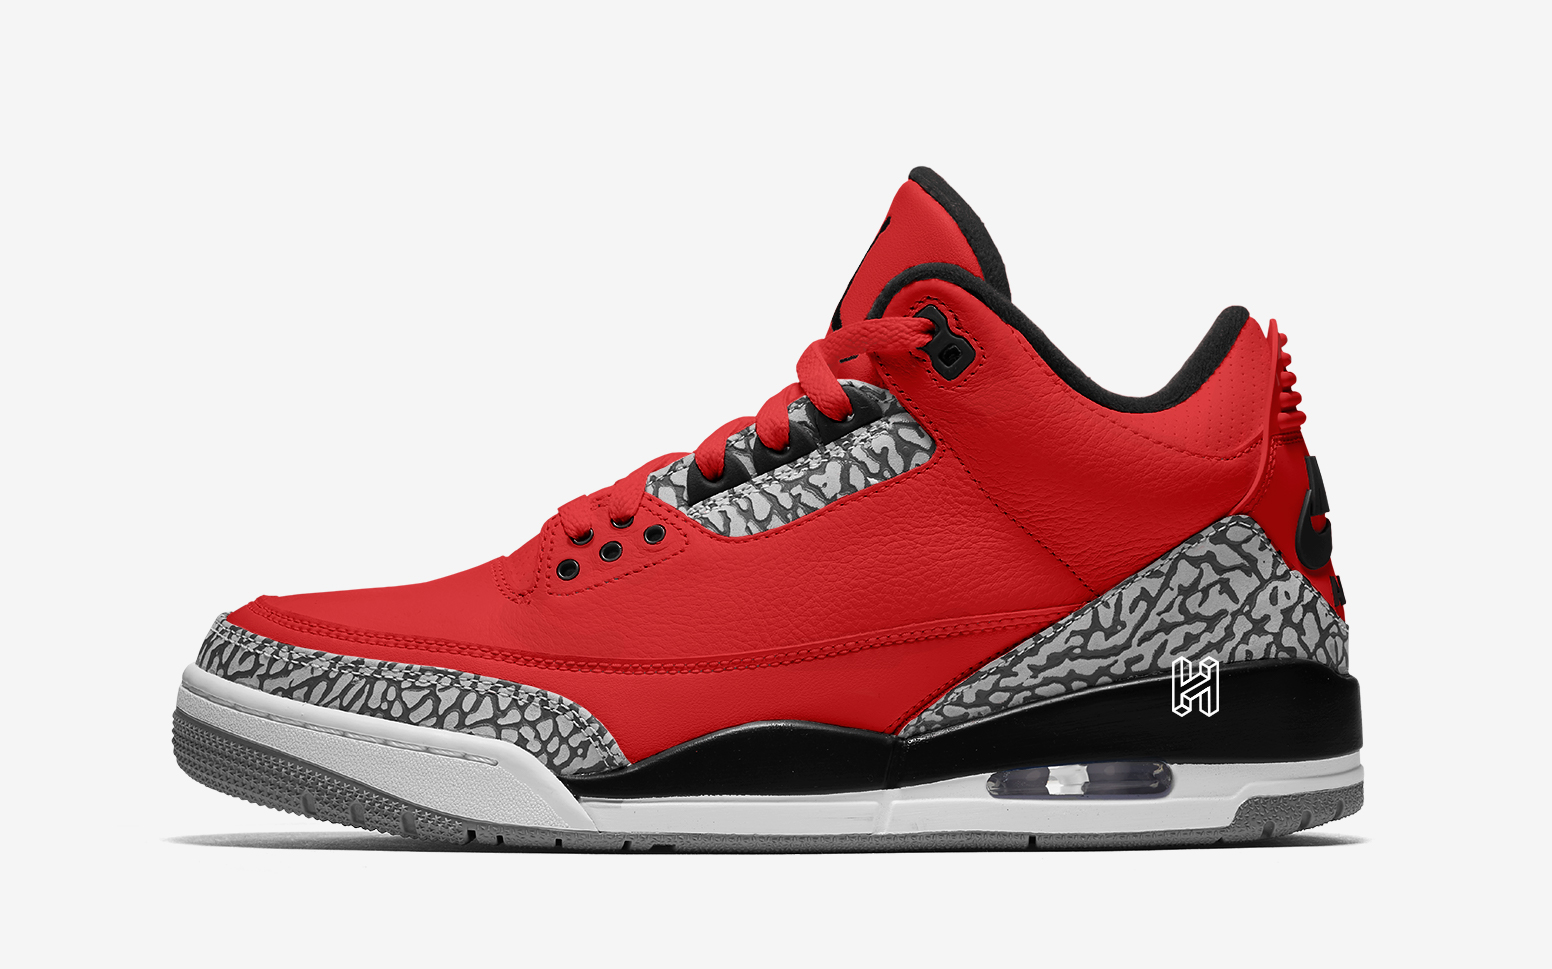 lowest price b8ac9 31650 Next Year's All-Star Air Jordan 3 Honors the City of Chicago ...